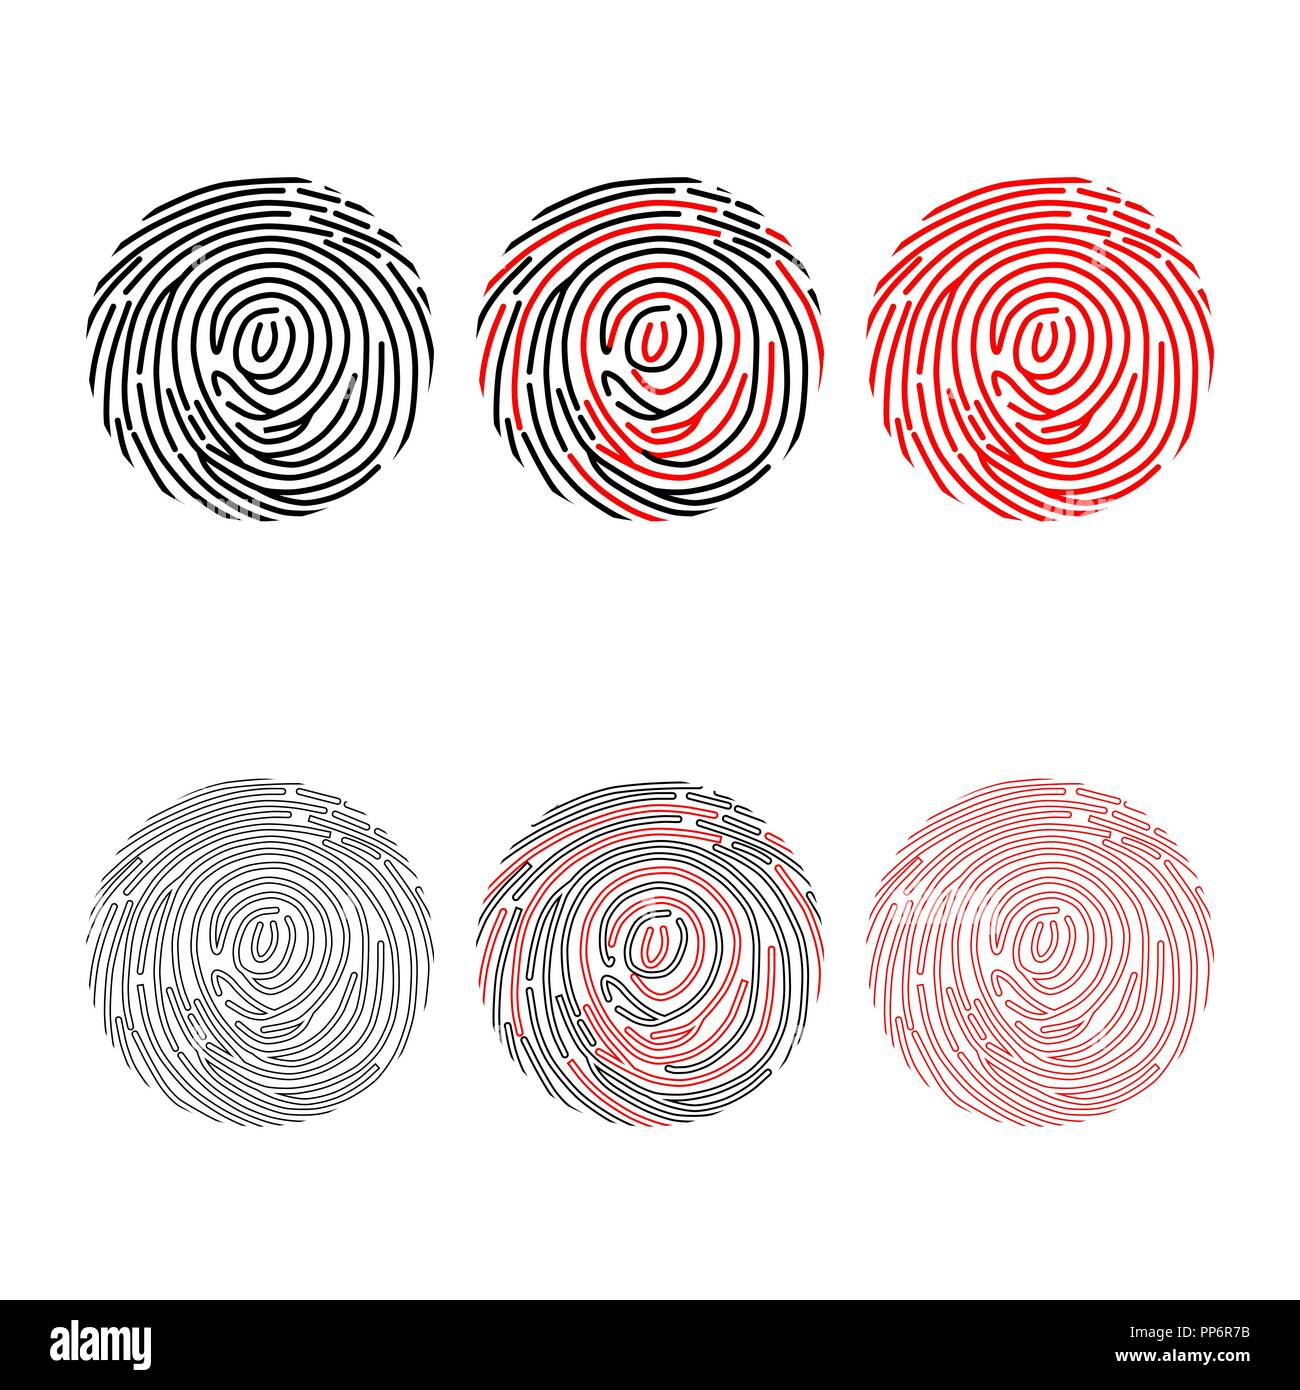 Set of different black and red finger prints isolated on white background - Stock Image